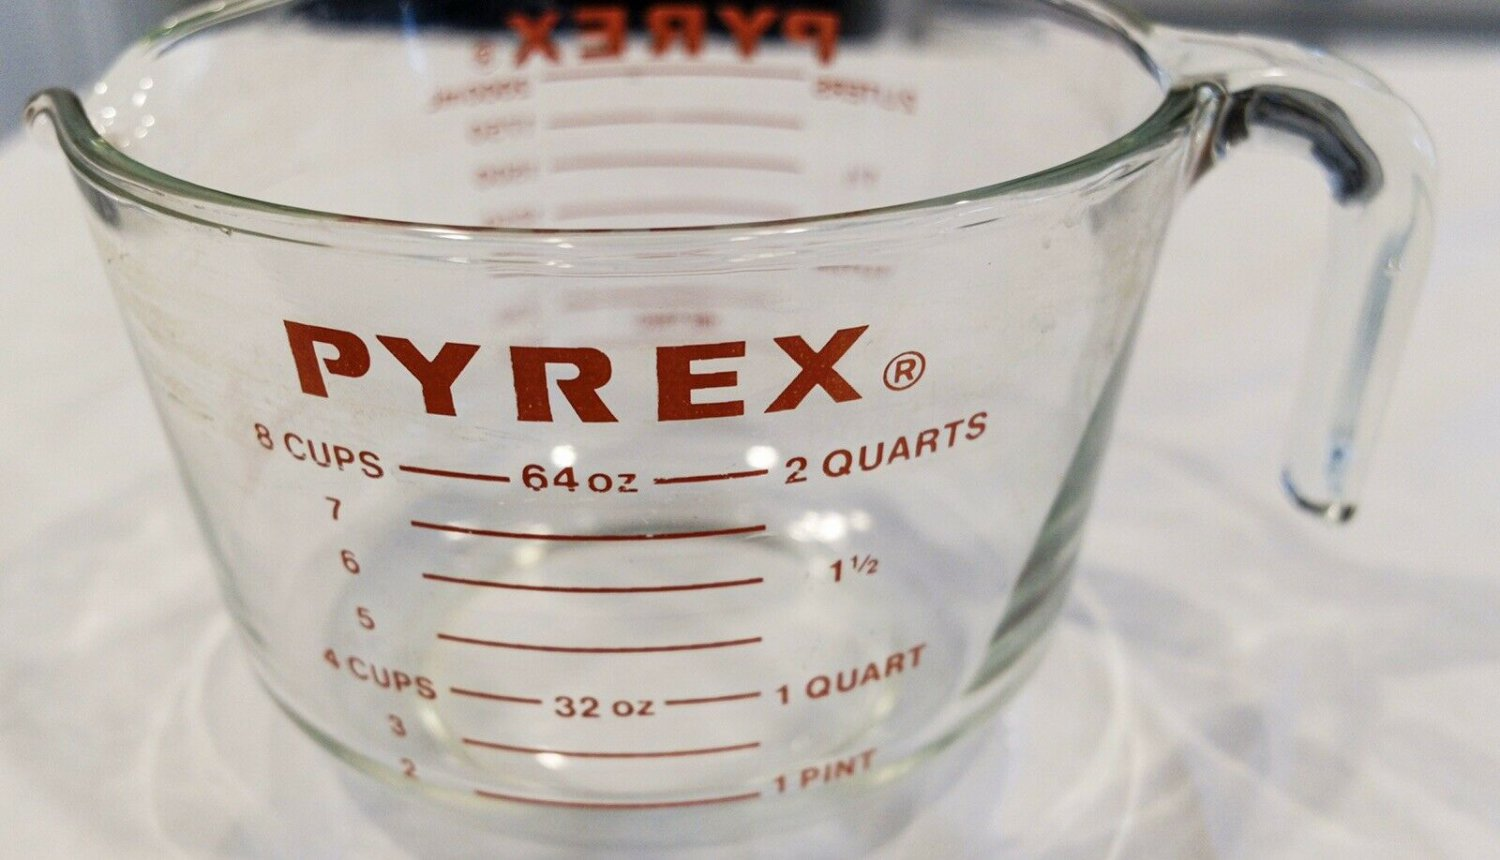 Pyrex Glass Measuring Cup 564 64 Oz 8 Cup 2 Quart 2